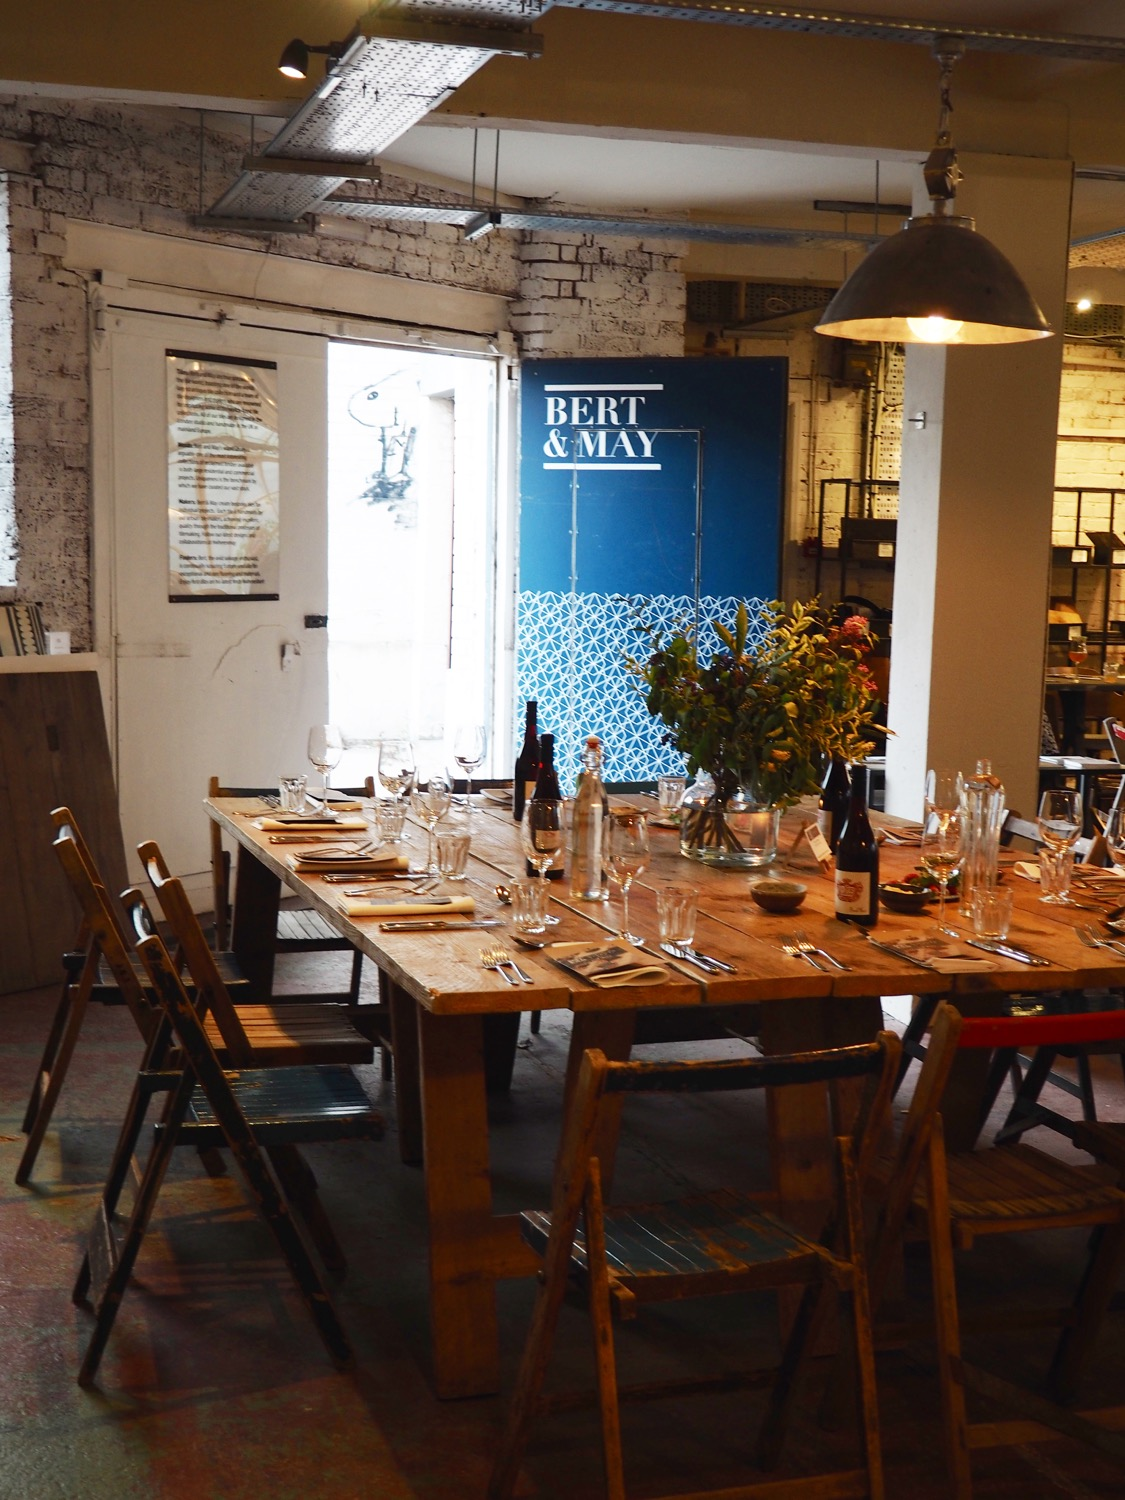 Bert & May supper club